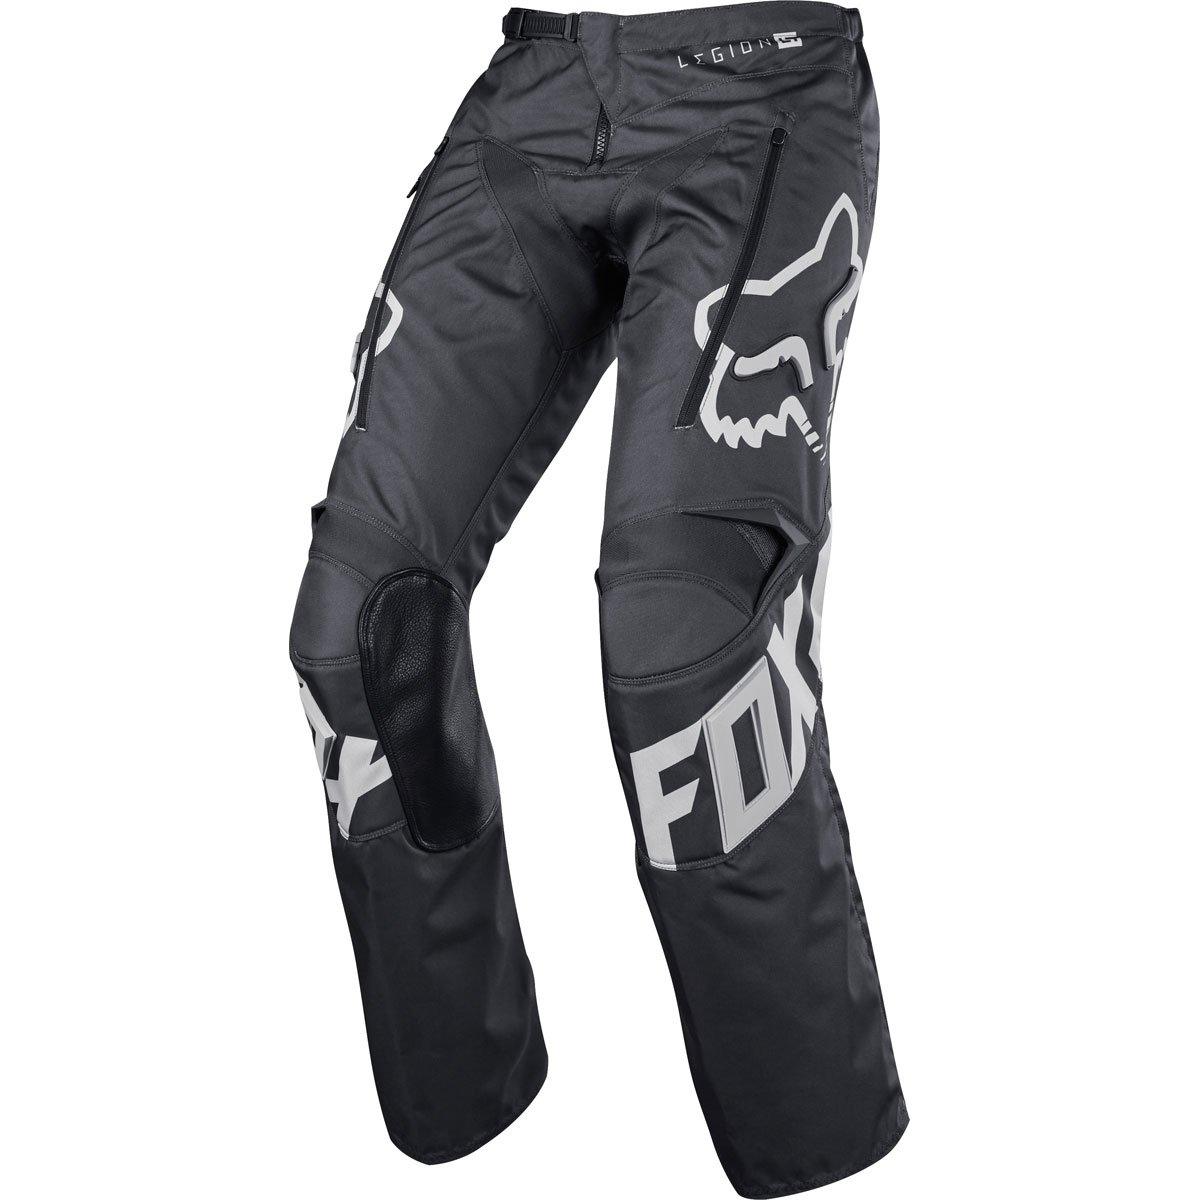 Fox Racing Legion LT EX Men's Off-Road Motorcycle Pants - Charcoal/32